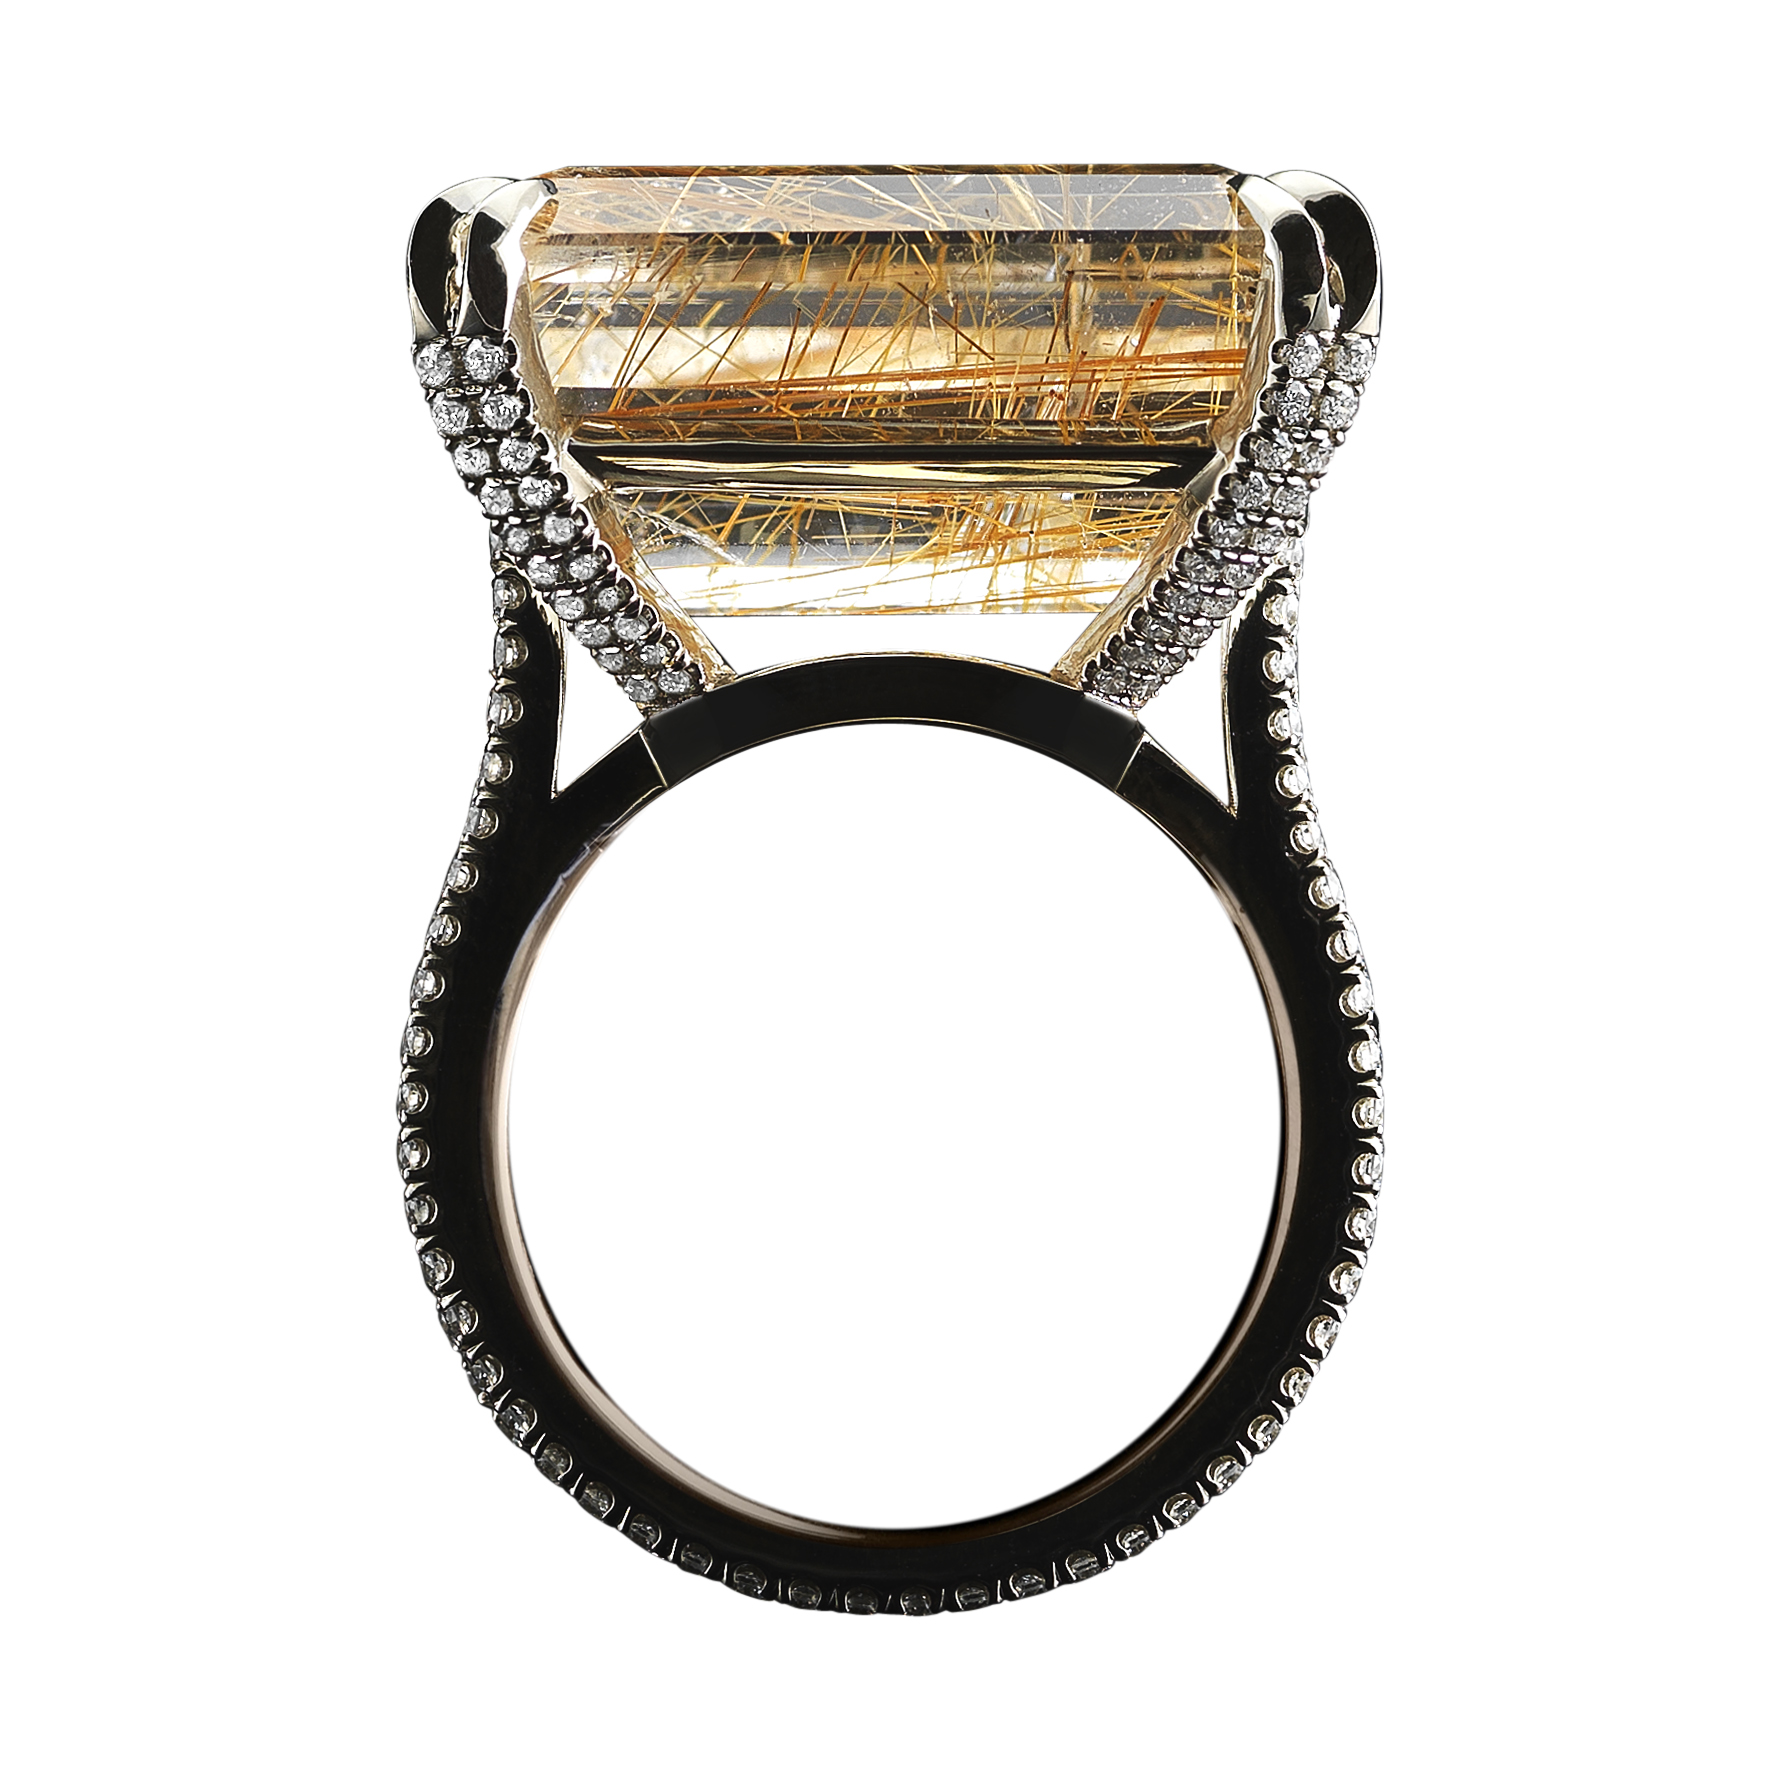 A 22.64 carat rectangular Rutilated Quartz set with Alexandra Mor's signature details of 'floating' Diamond melee and knife-edged wire. 18-karat white gold set on 1mm 18-karat yellow gold band with AM logo gallery. 0.90 total carat Diamond weight. Signed by artist. Crafted in the USA. Limited-Edition 1/25.